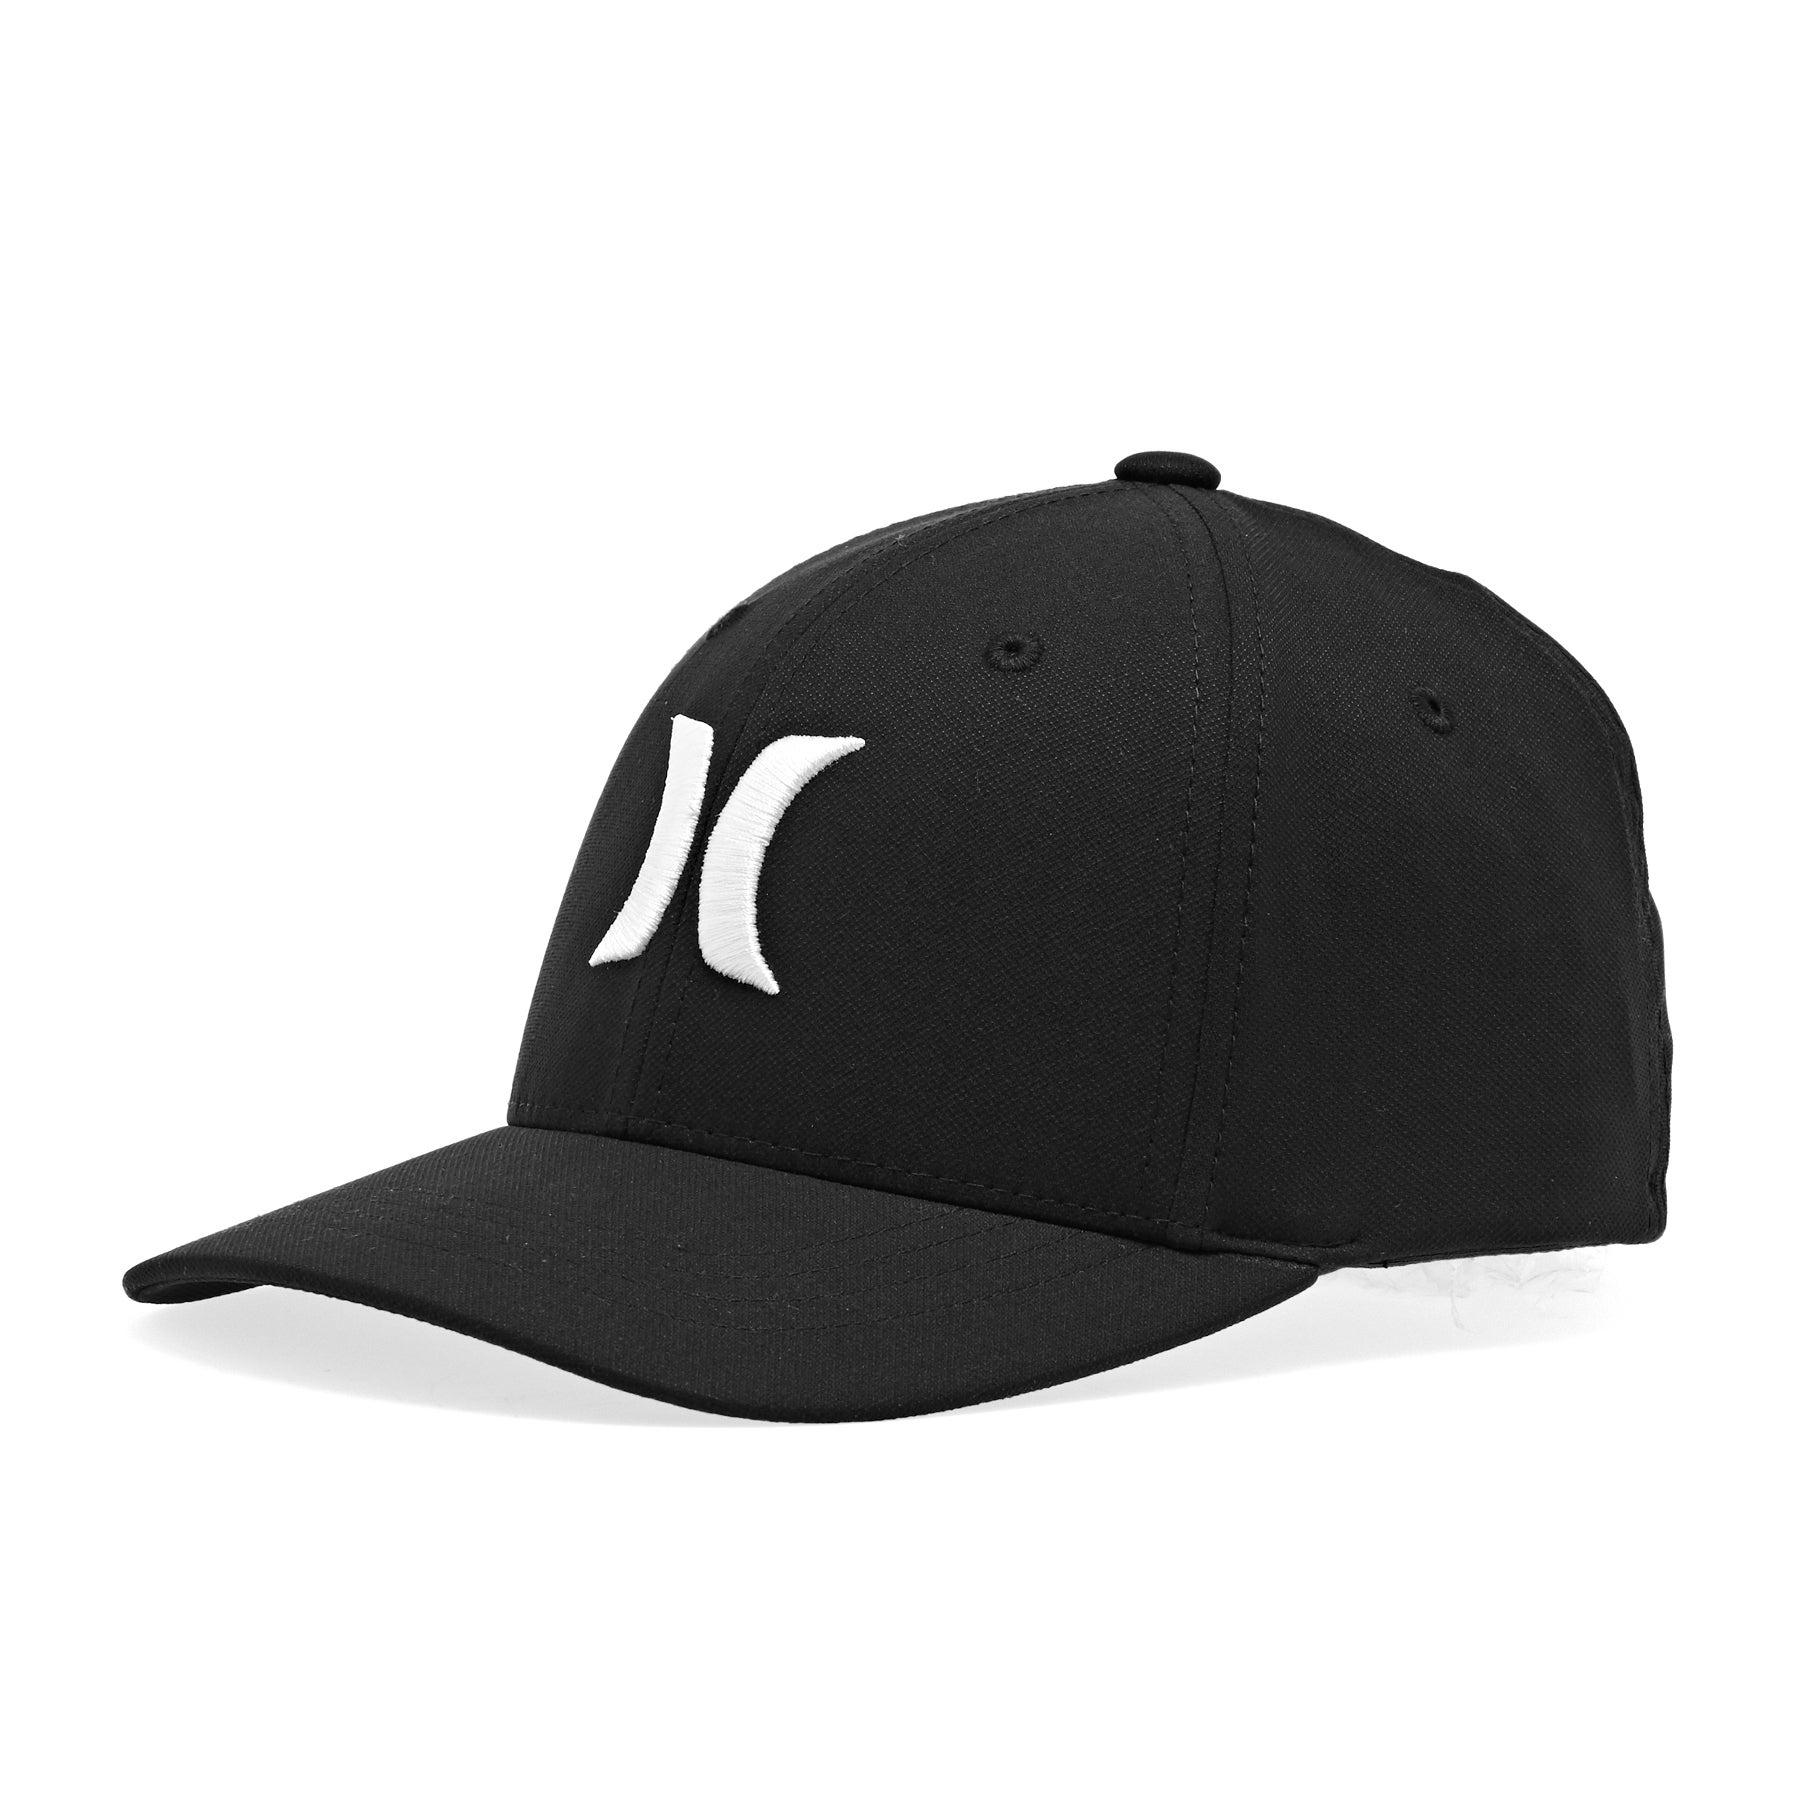 e3e2ee671 Hurley Dri-fit One & only Cap - Free Delivery options on All Orders from  Surfdome